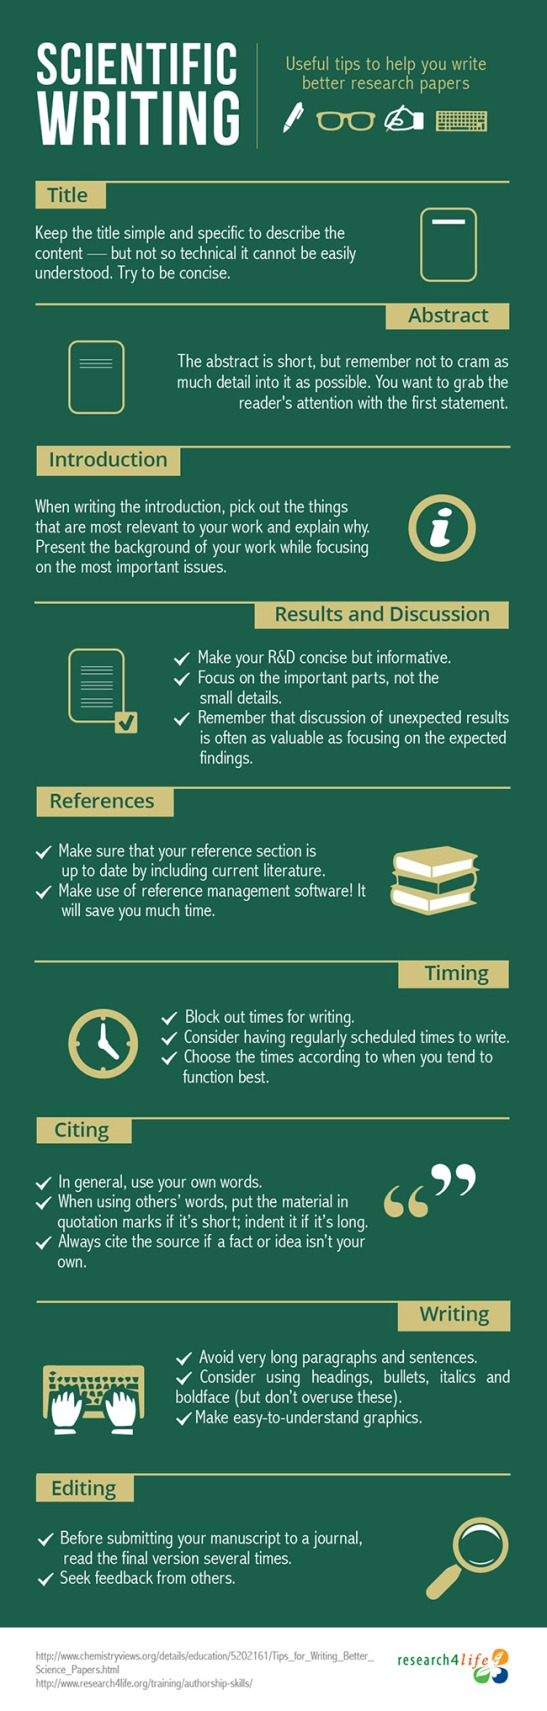 infographic-science-writing-tips